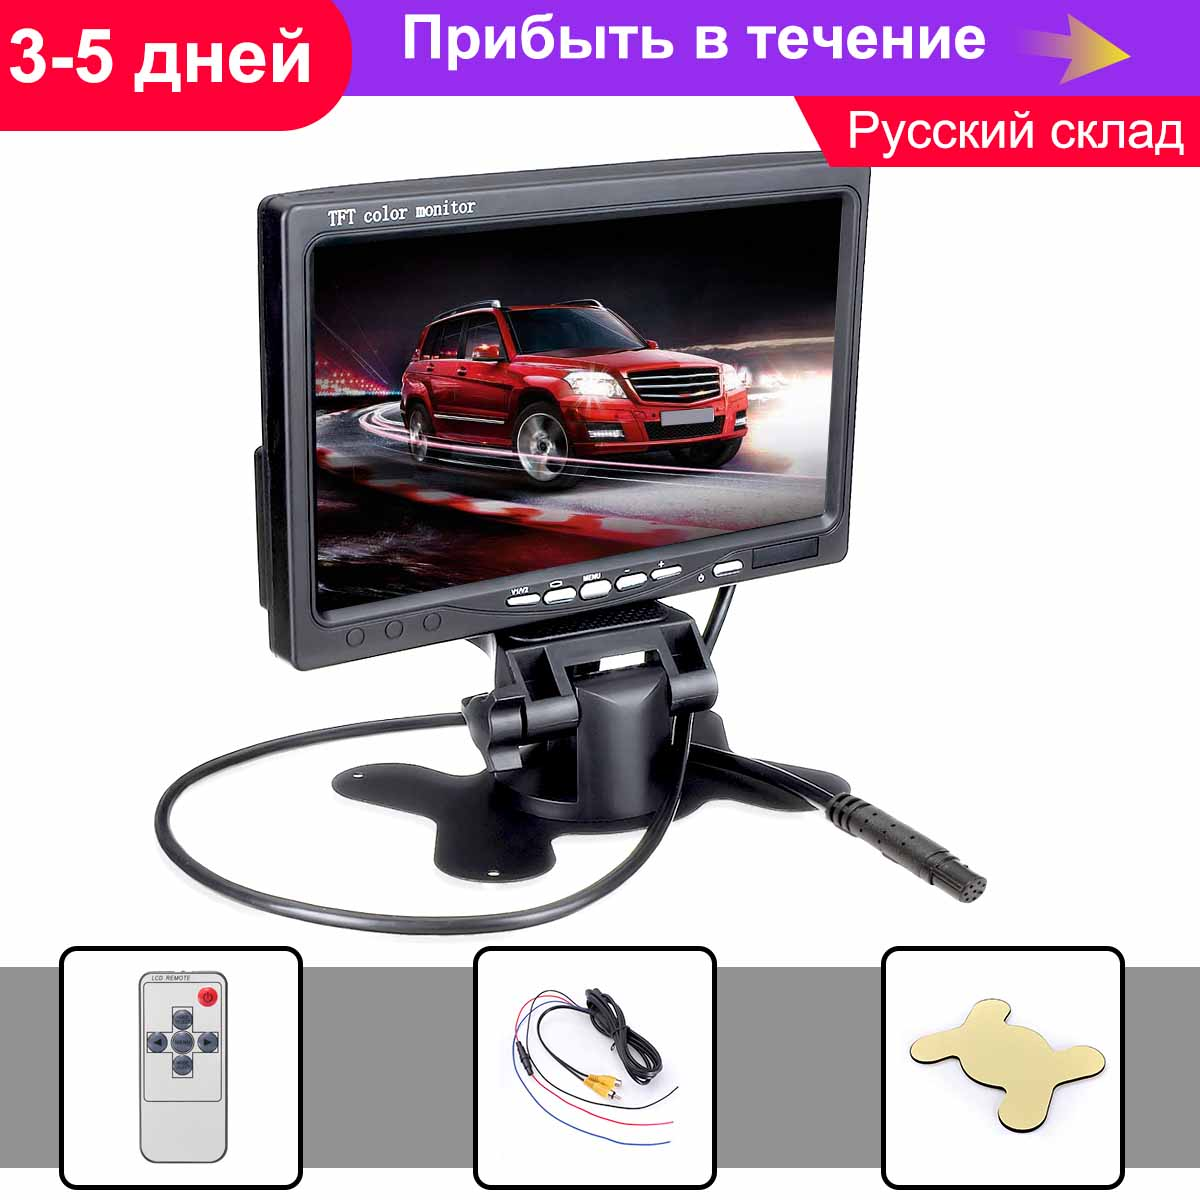 Universal <font><b>7</b></font> <font><b>Inch</b></font> TFT LCD Display Screen 480x234 Car <font><b>Monitor</b></font> For CCTV Reversing Rearview Backup Camera image